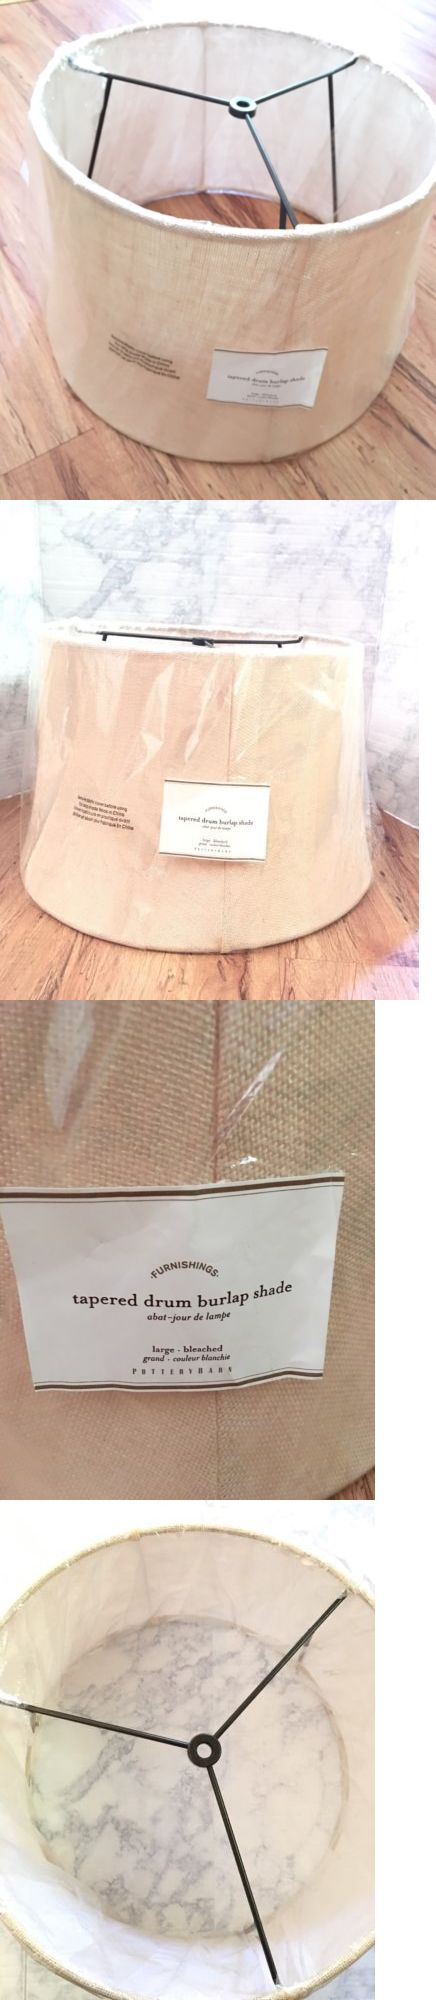 Lamp Shades 20708: Nwt Pottery Barn Tapered Drum Lamp Shade Bleached Burlap Drum Lamp Shade Large -> BUY IT NOW ONLY: $39.95 on eBay!